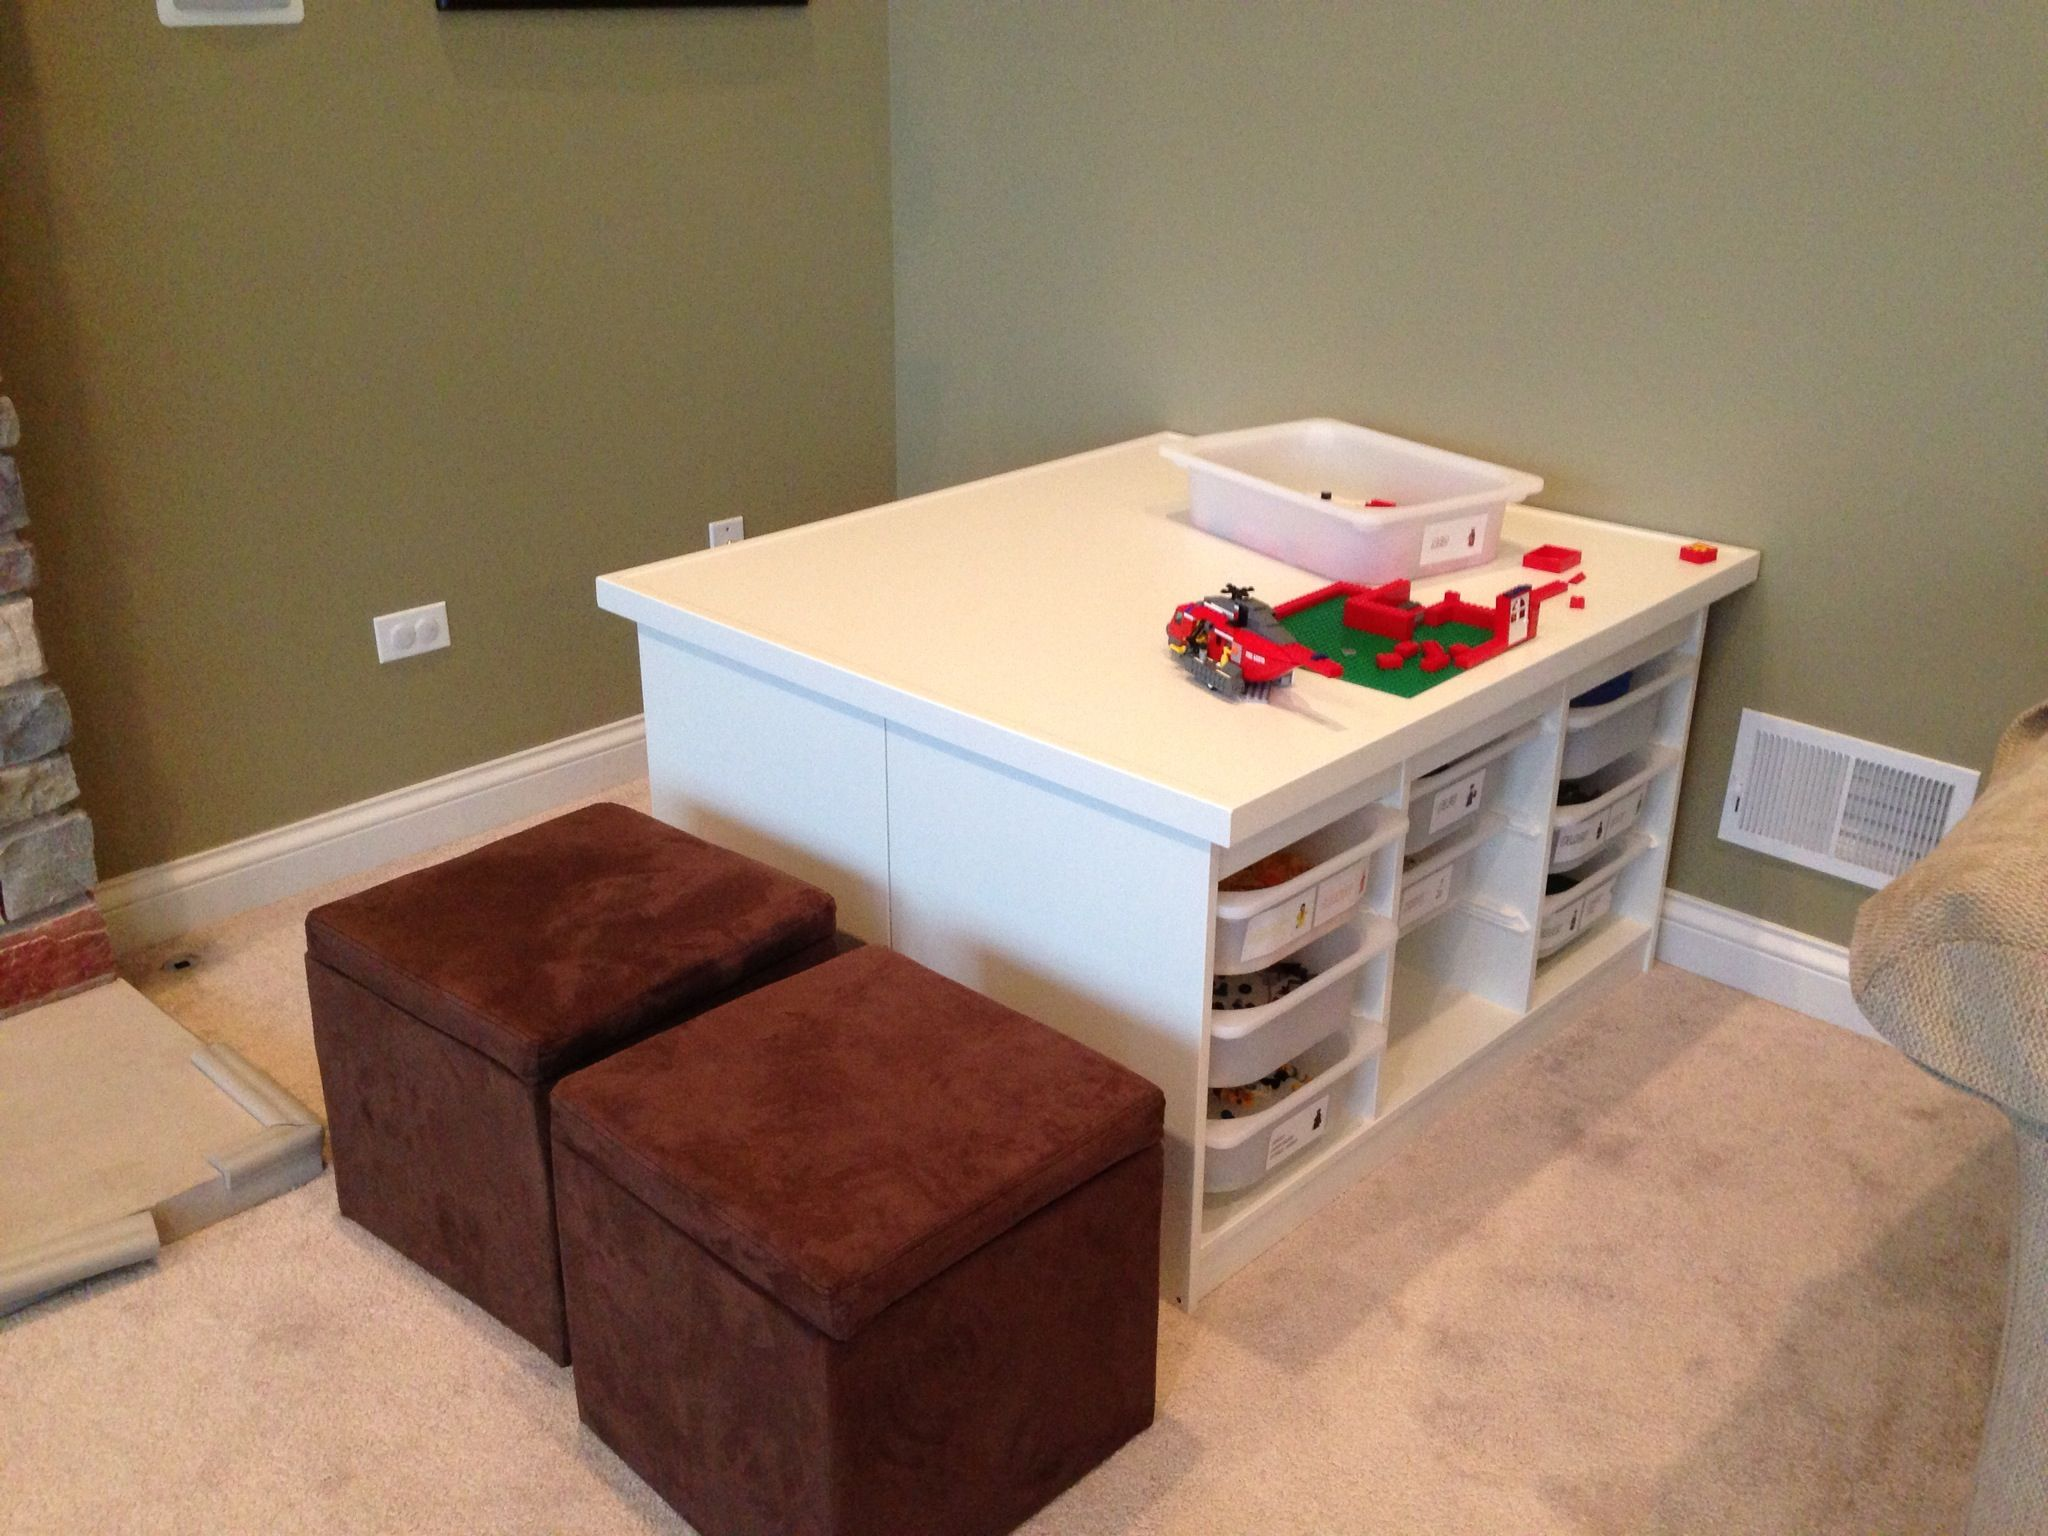 Ikea Trofast Unit Measurements ~ Pin by Naomi Dasher on IKEA HACKS Products  Pinterest